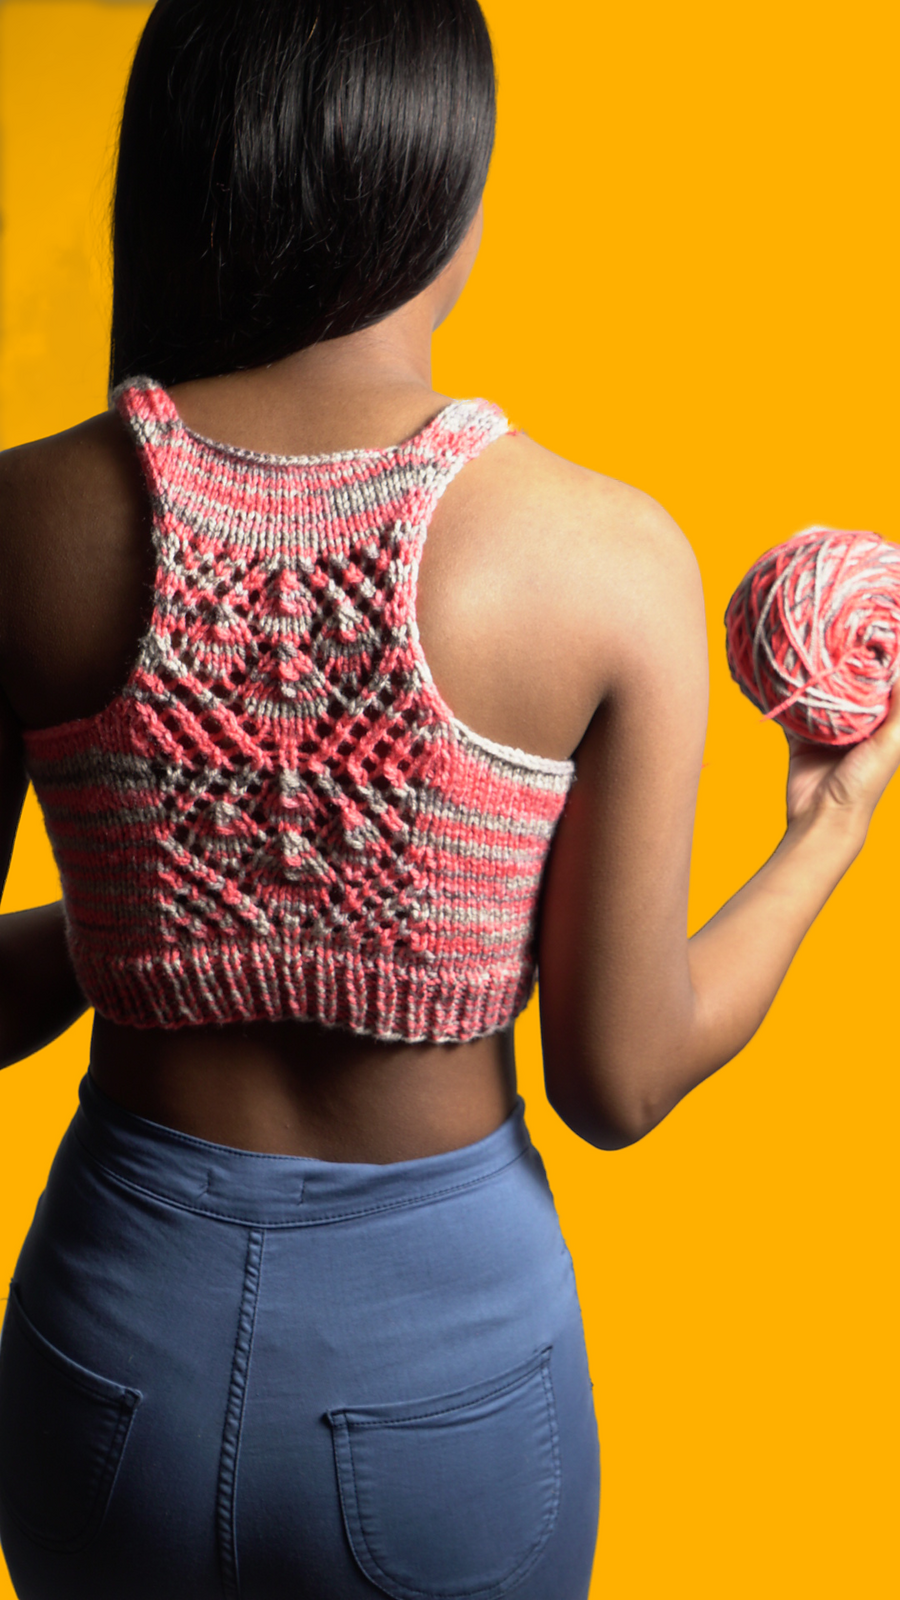 Cute Knit Halter Top Pattern Alert ... Designed By Lisa Borum Of LSB Creates